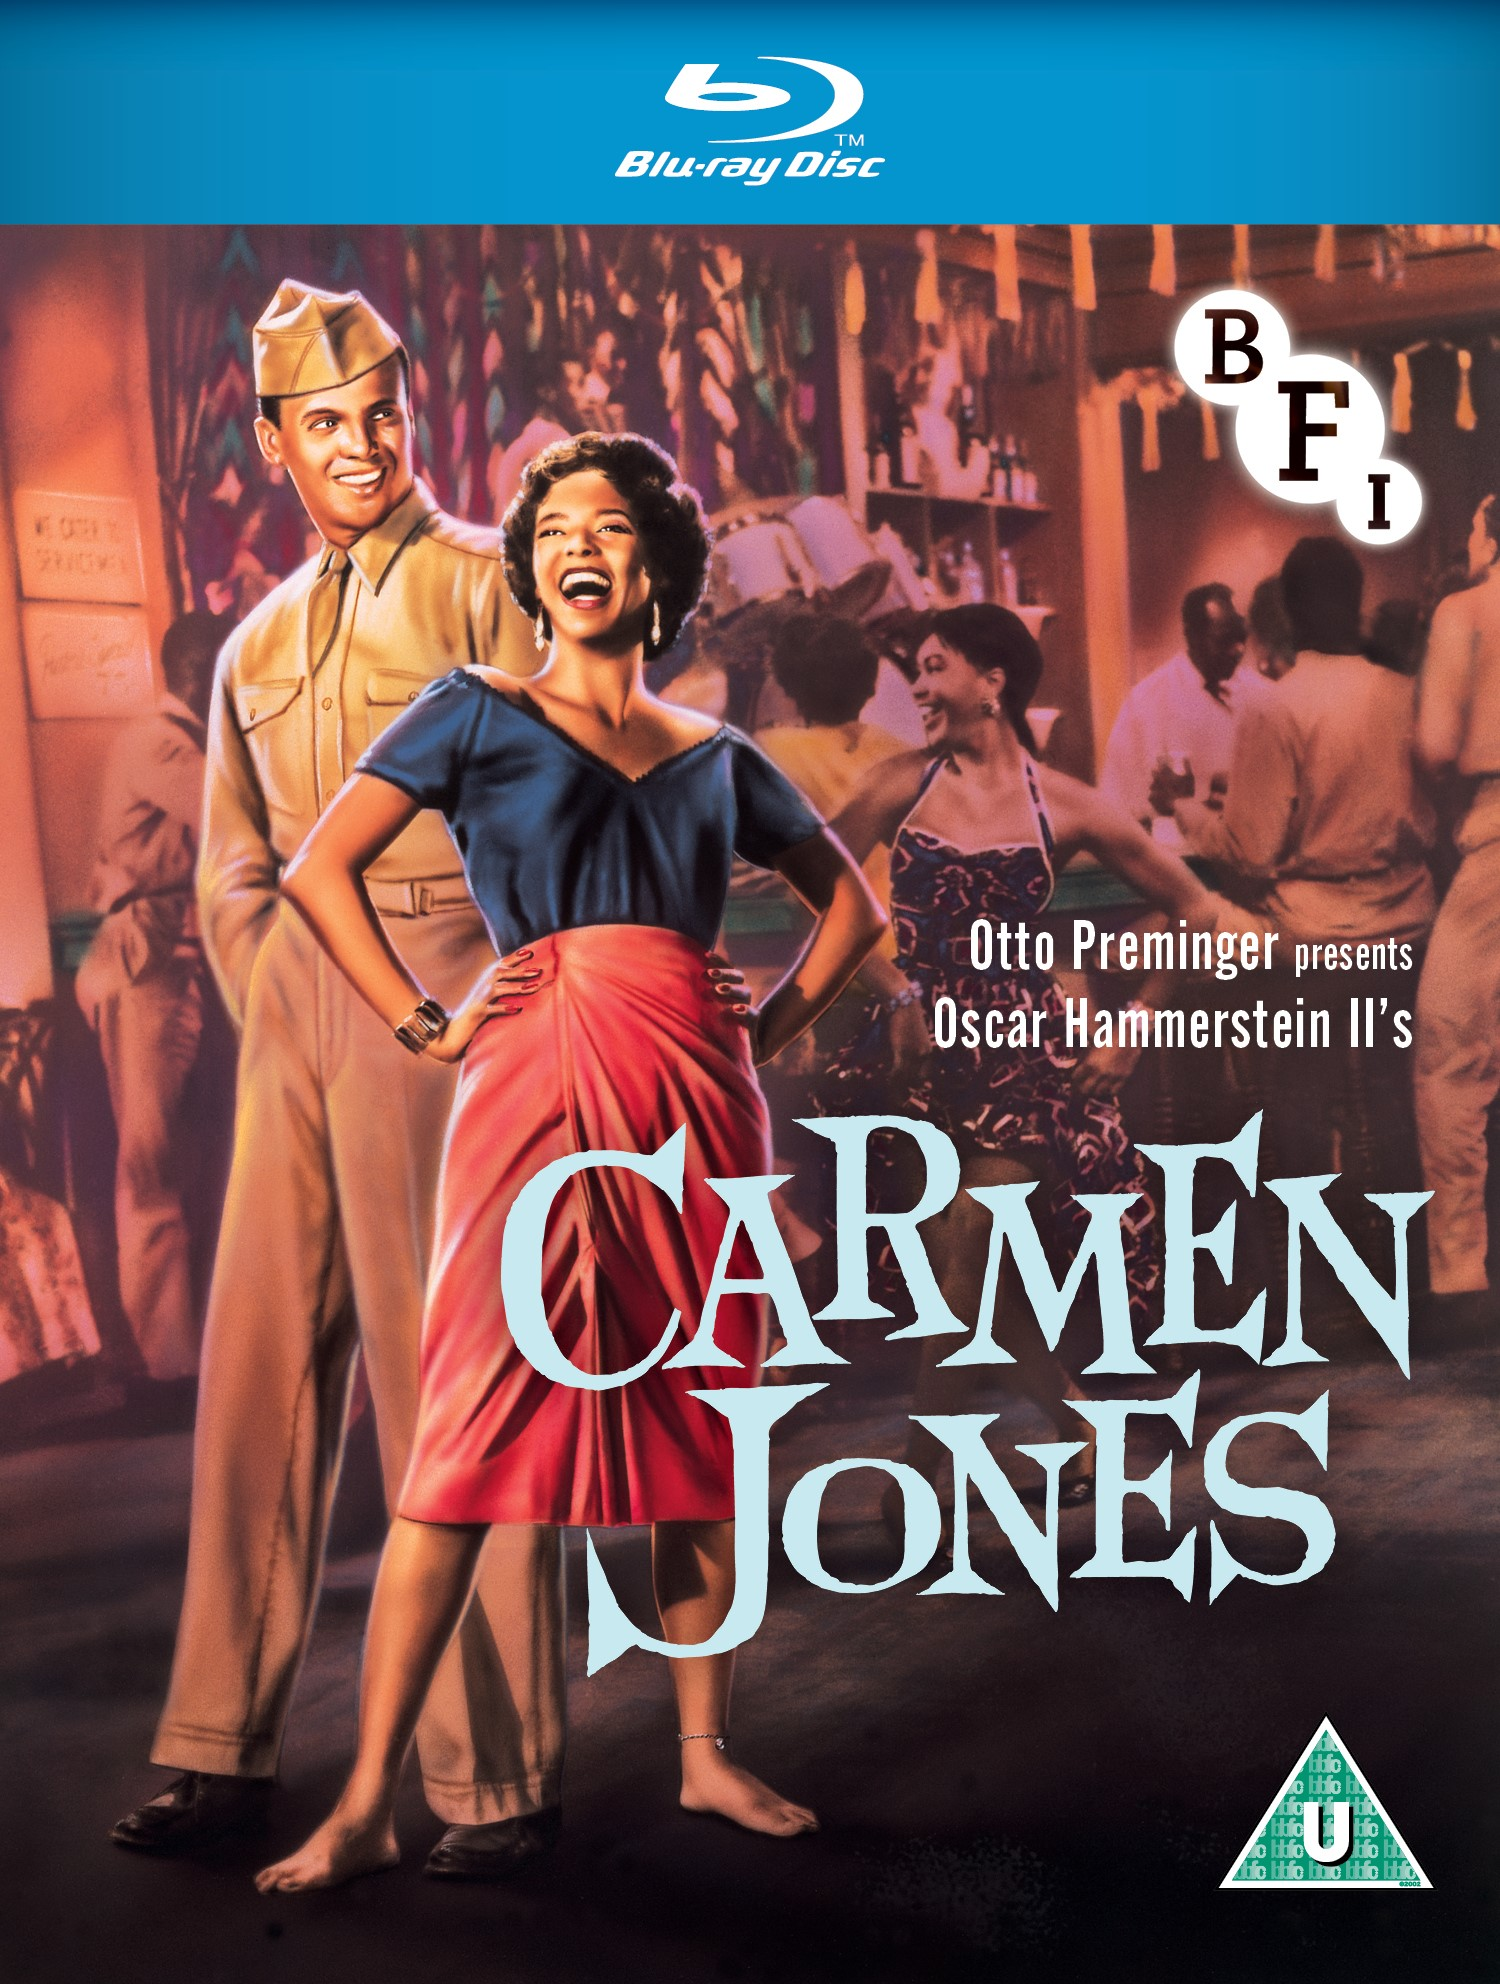 Buy Carmen Jones (Blu-ray)